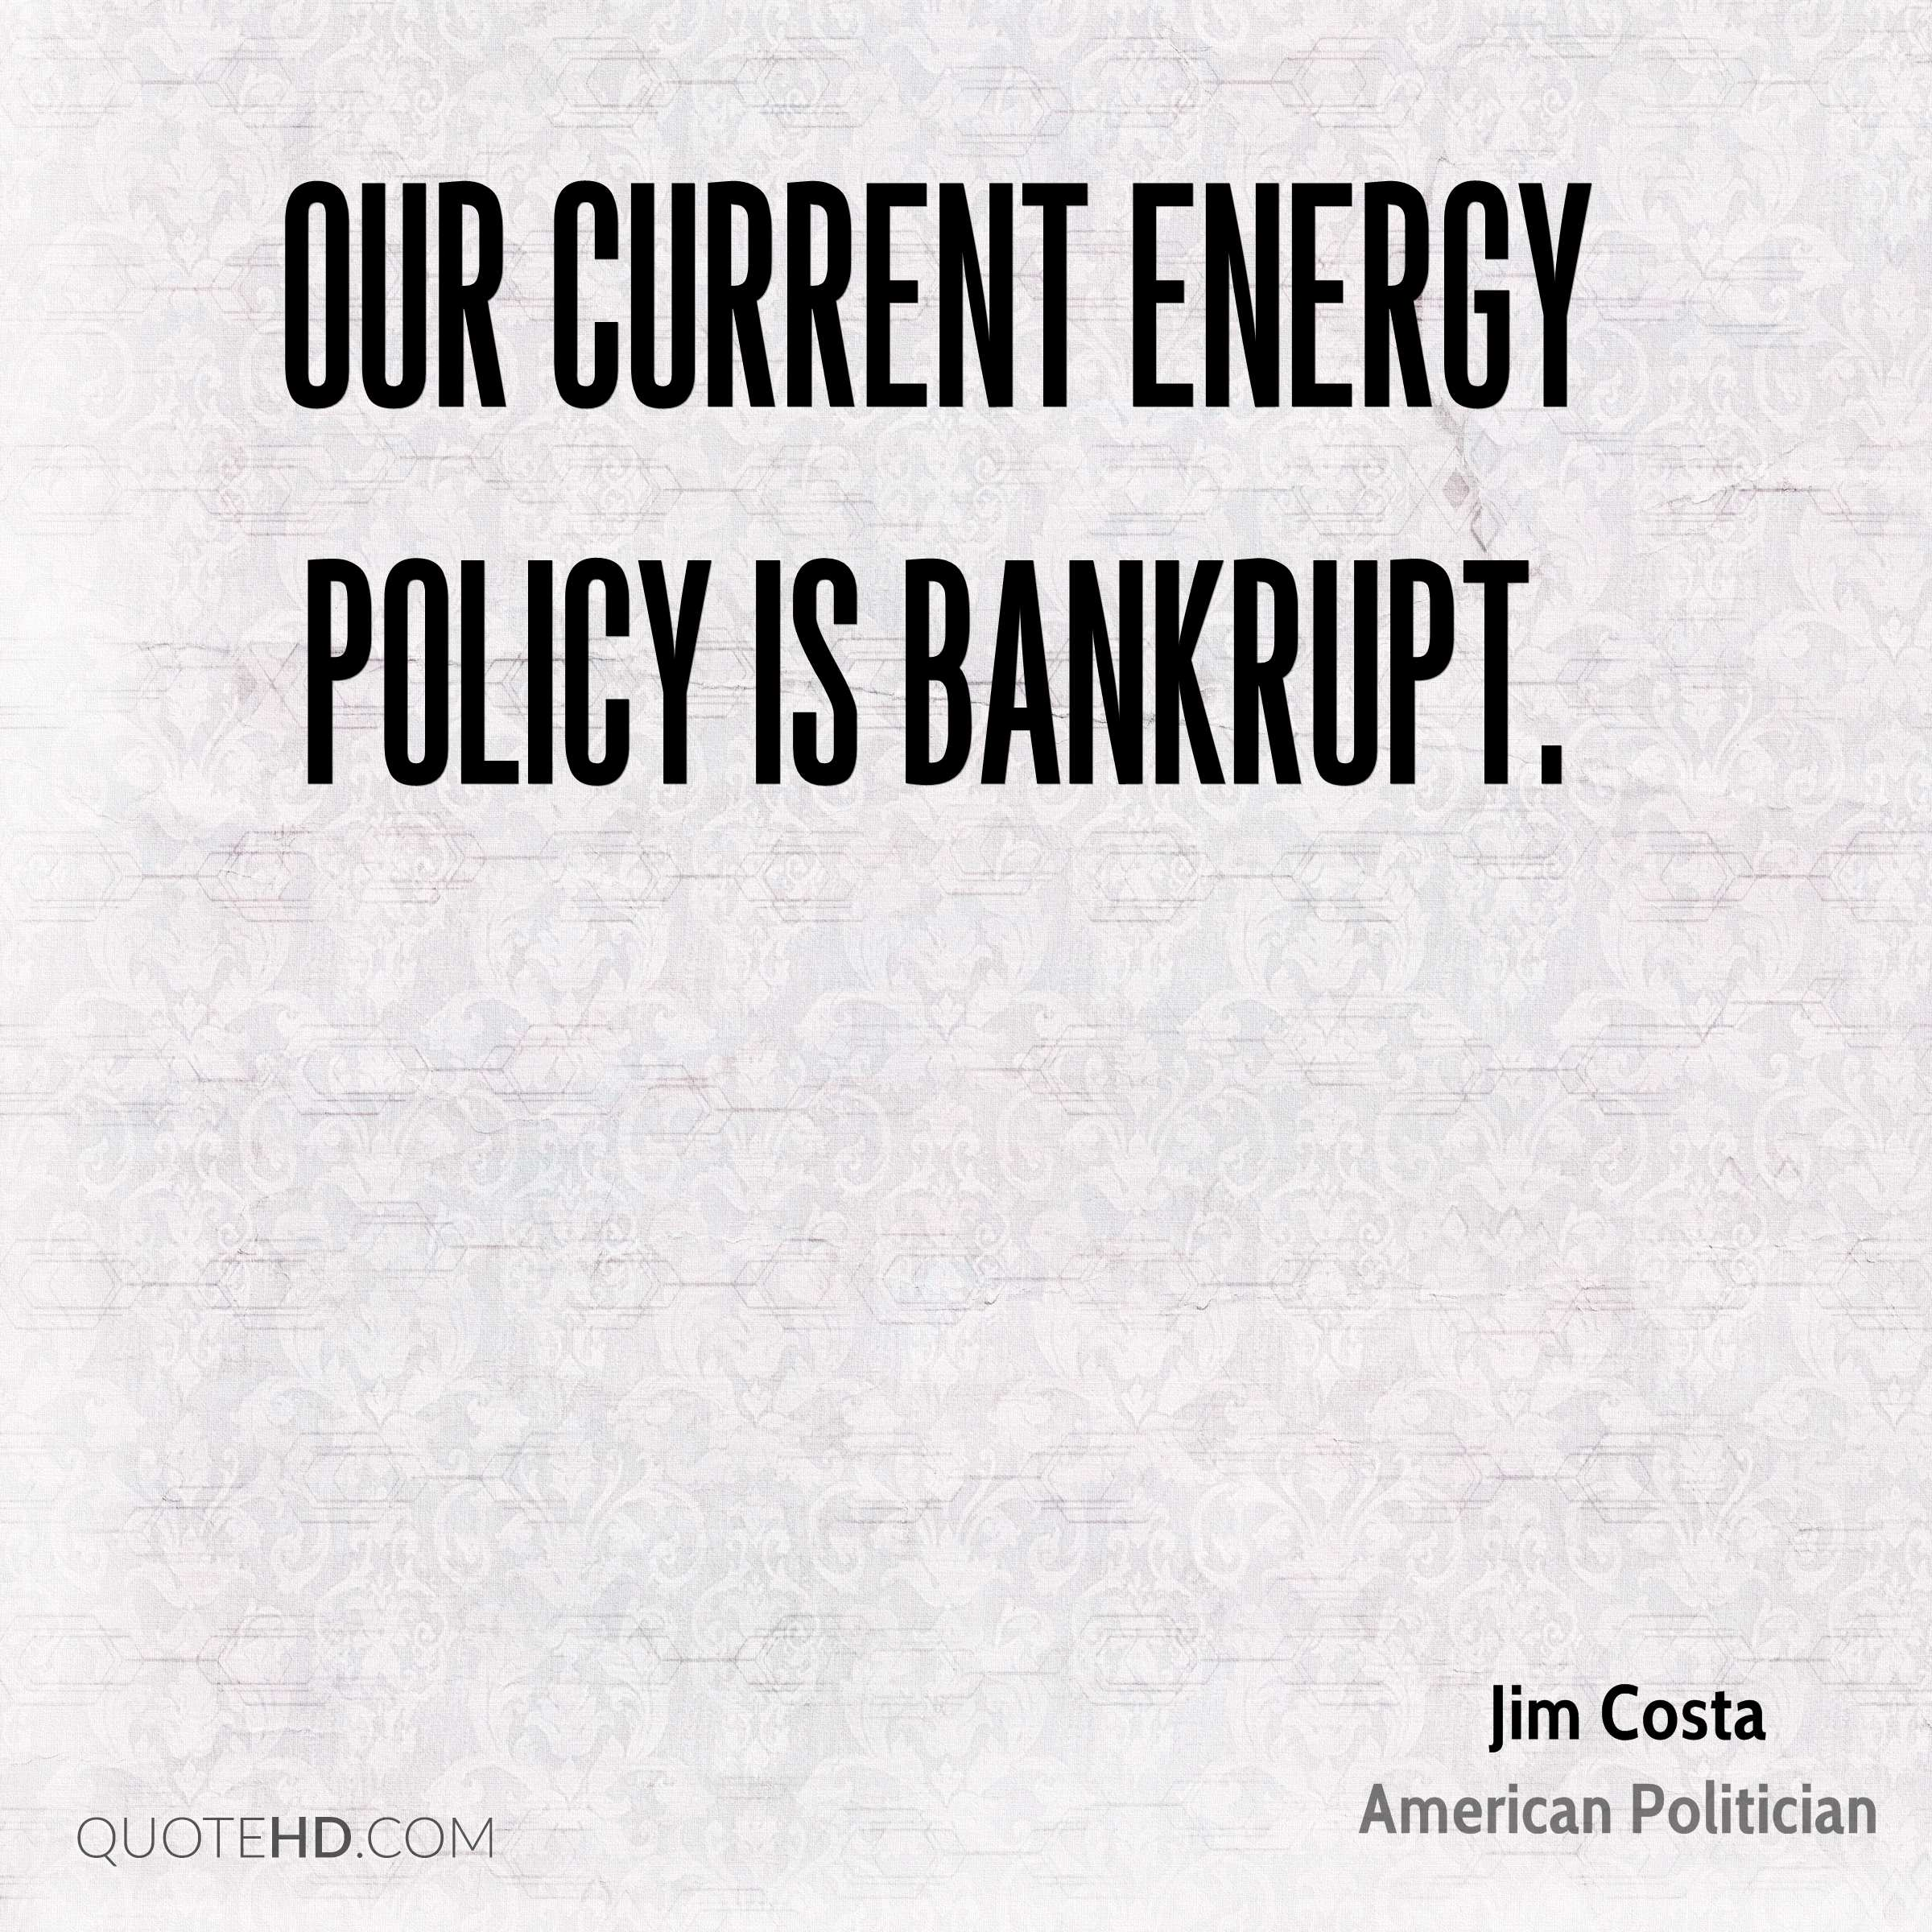 Our current energy policy is bankrupt.